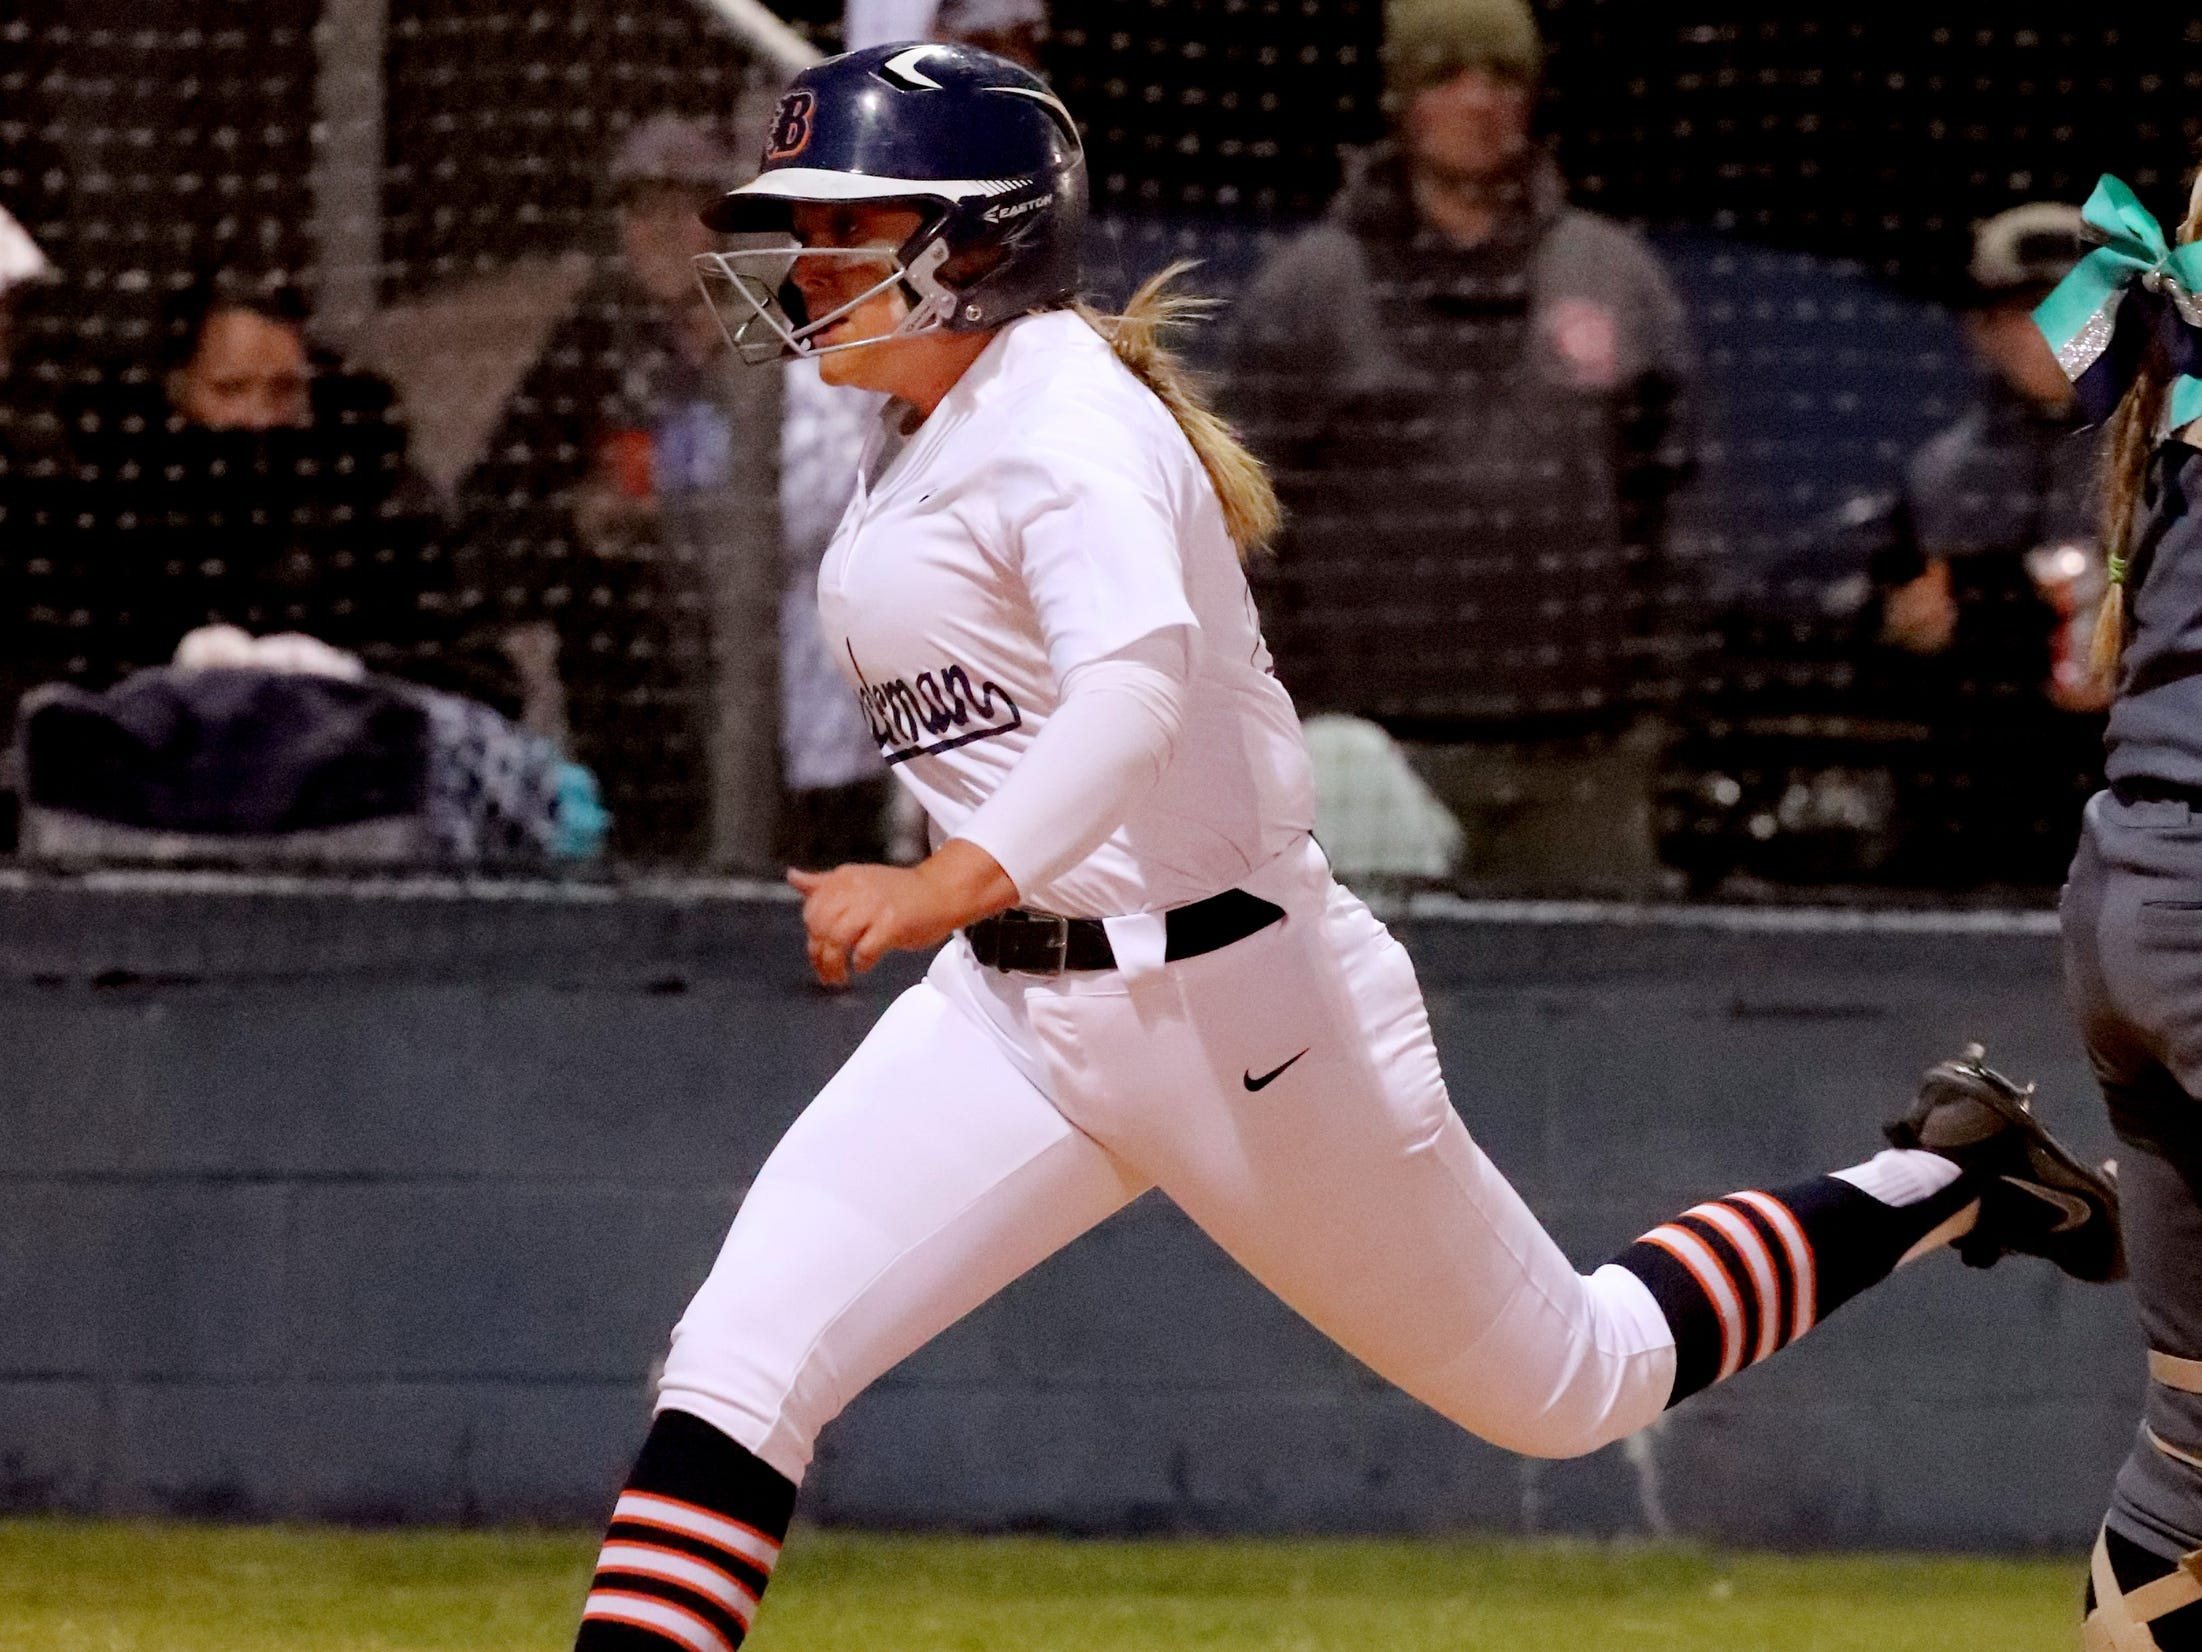 Blackman's Ashlynn Hamby (25) crosses home plate during the game against Siegel, on Monday, March 18, 2019, at Blackman.